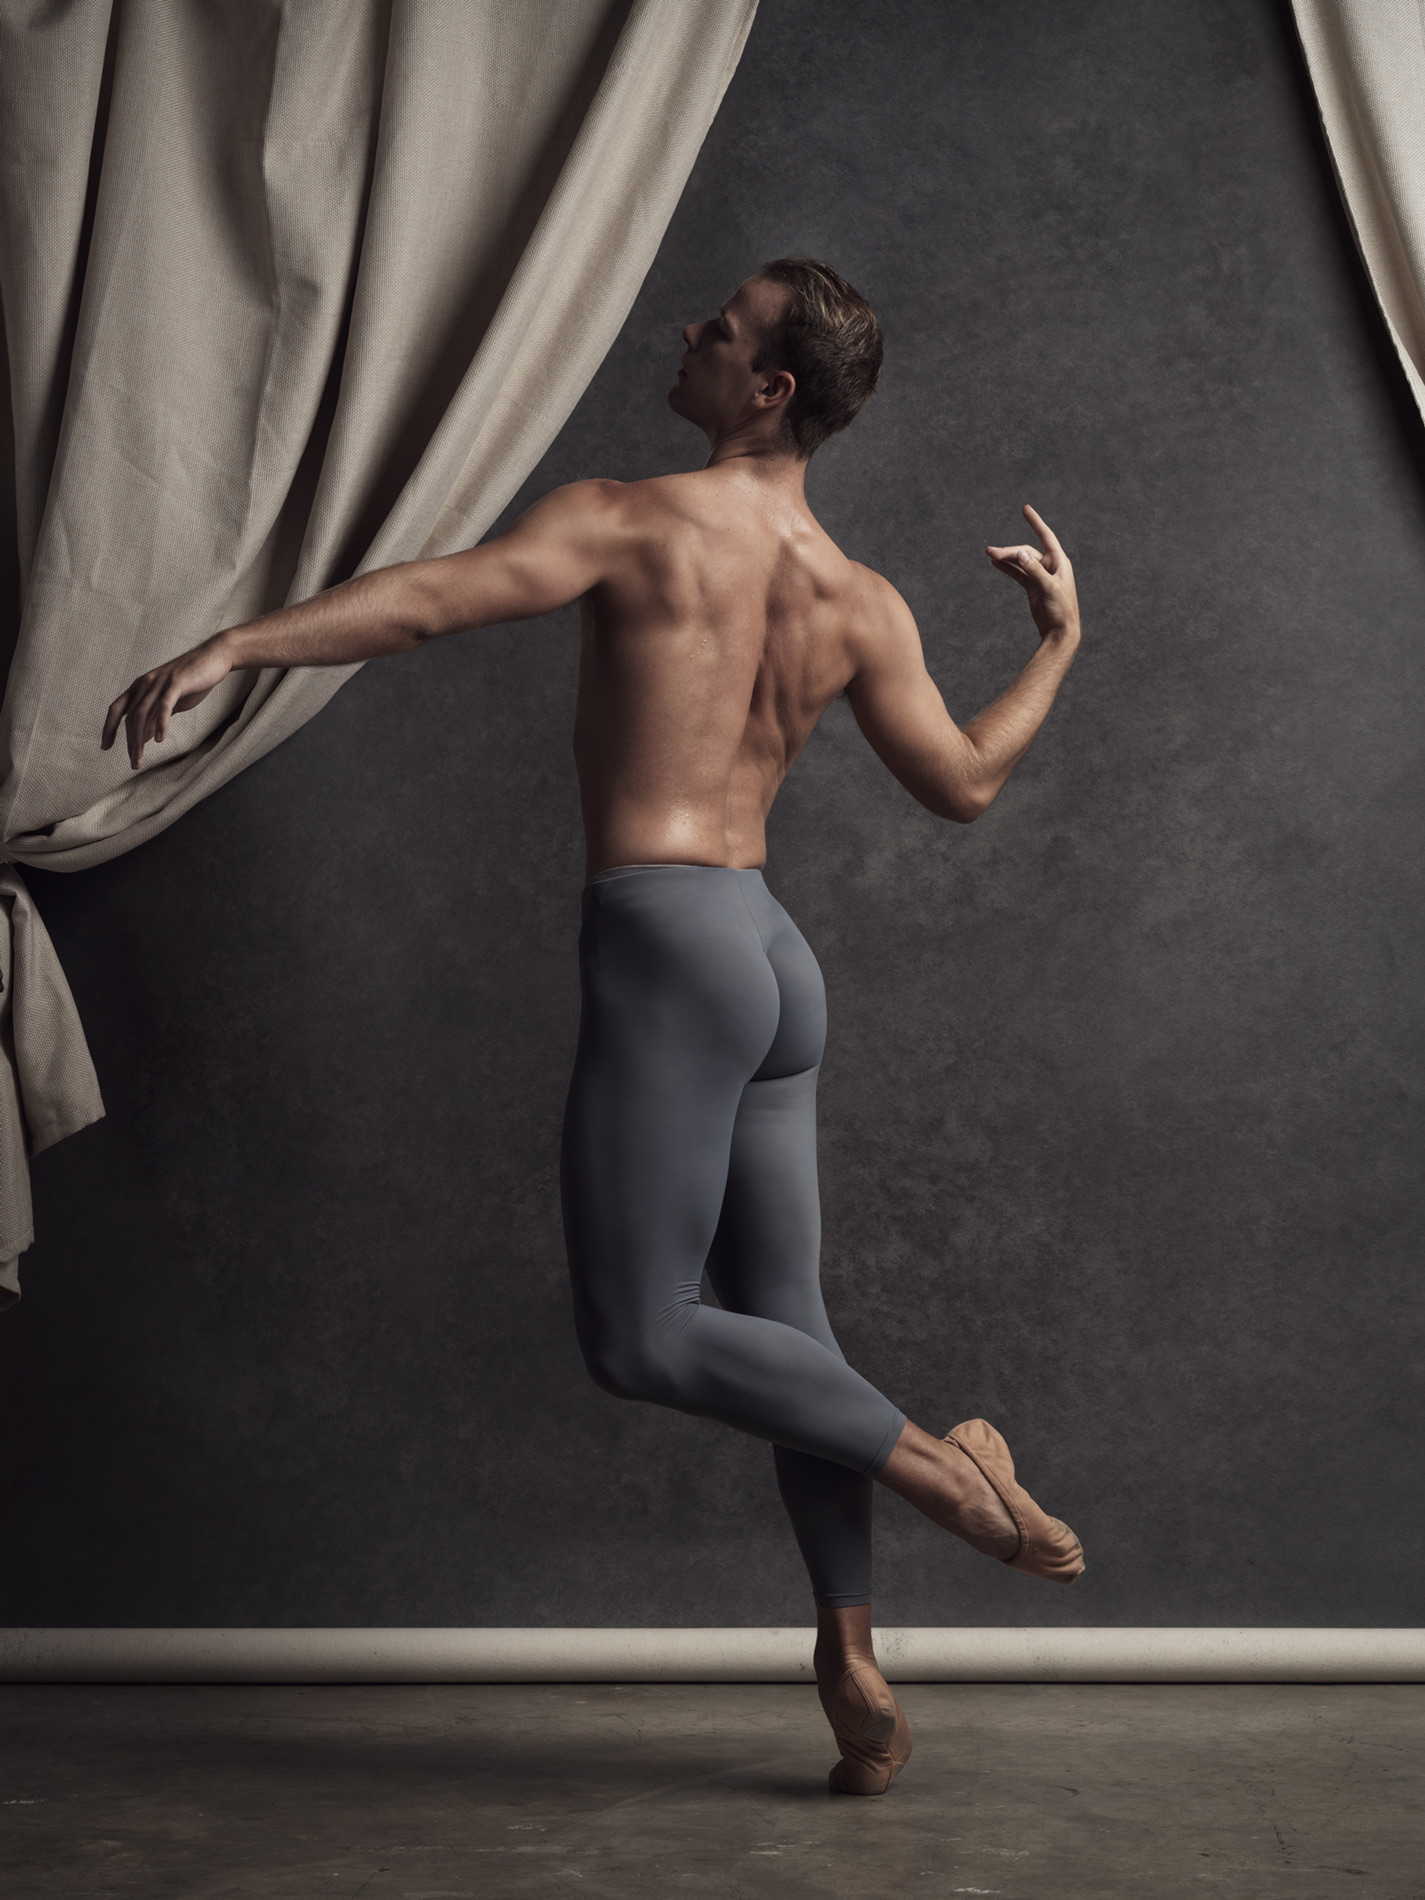 Edward Smith. The Australian Ballet. 2019